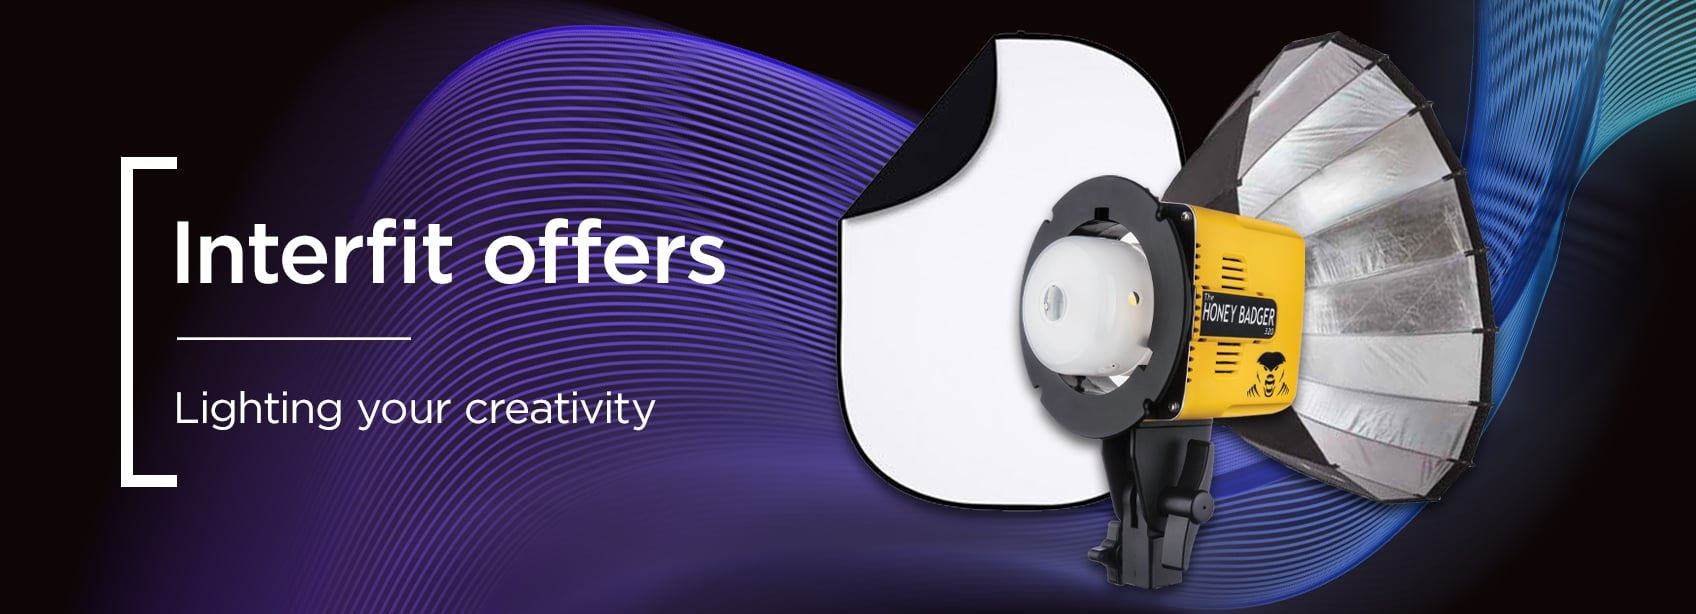 Interfit Discounts - Hurry ends 24th October